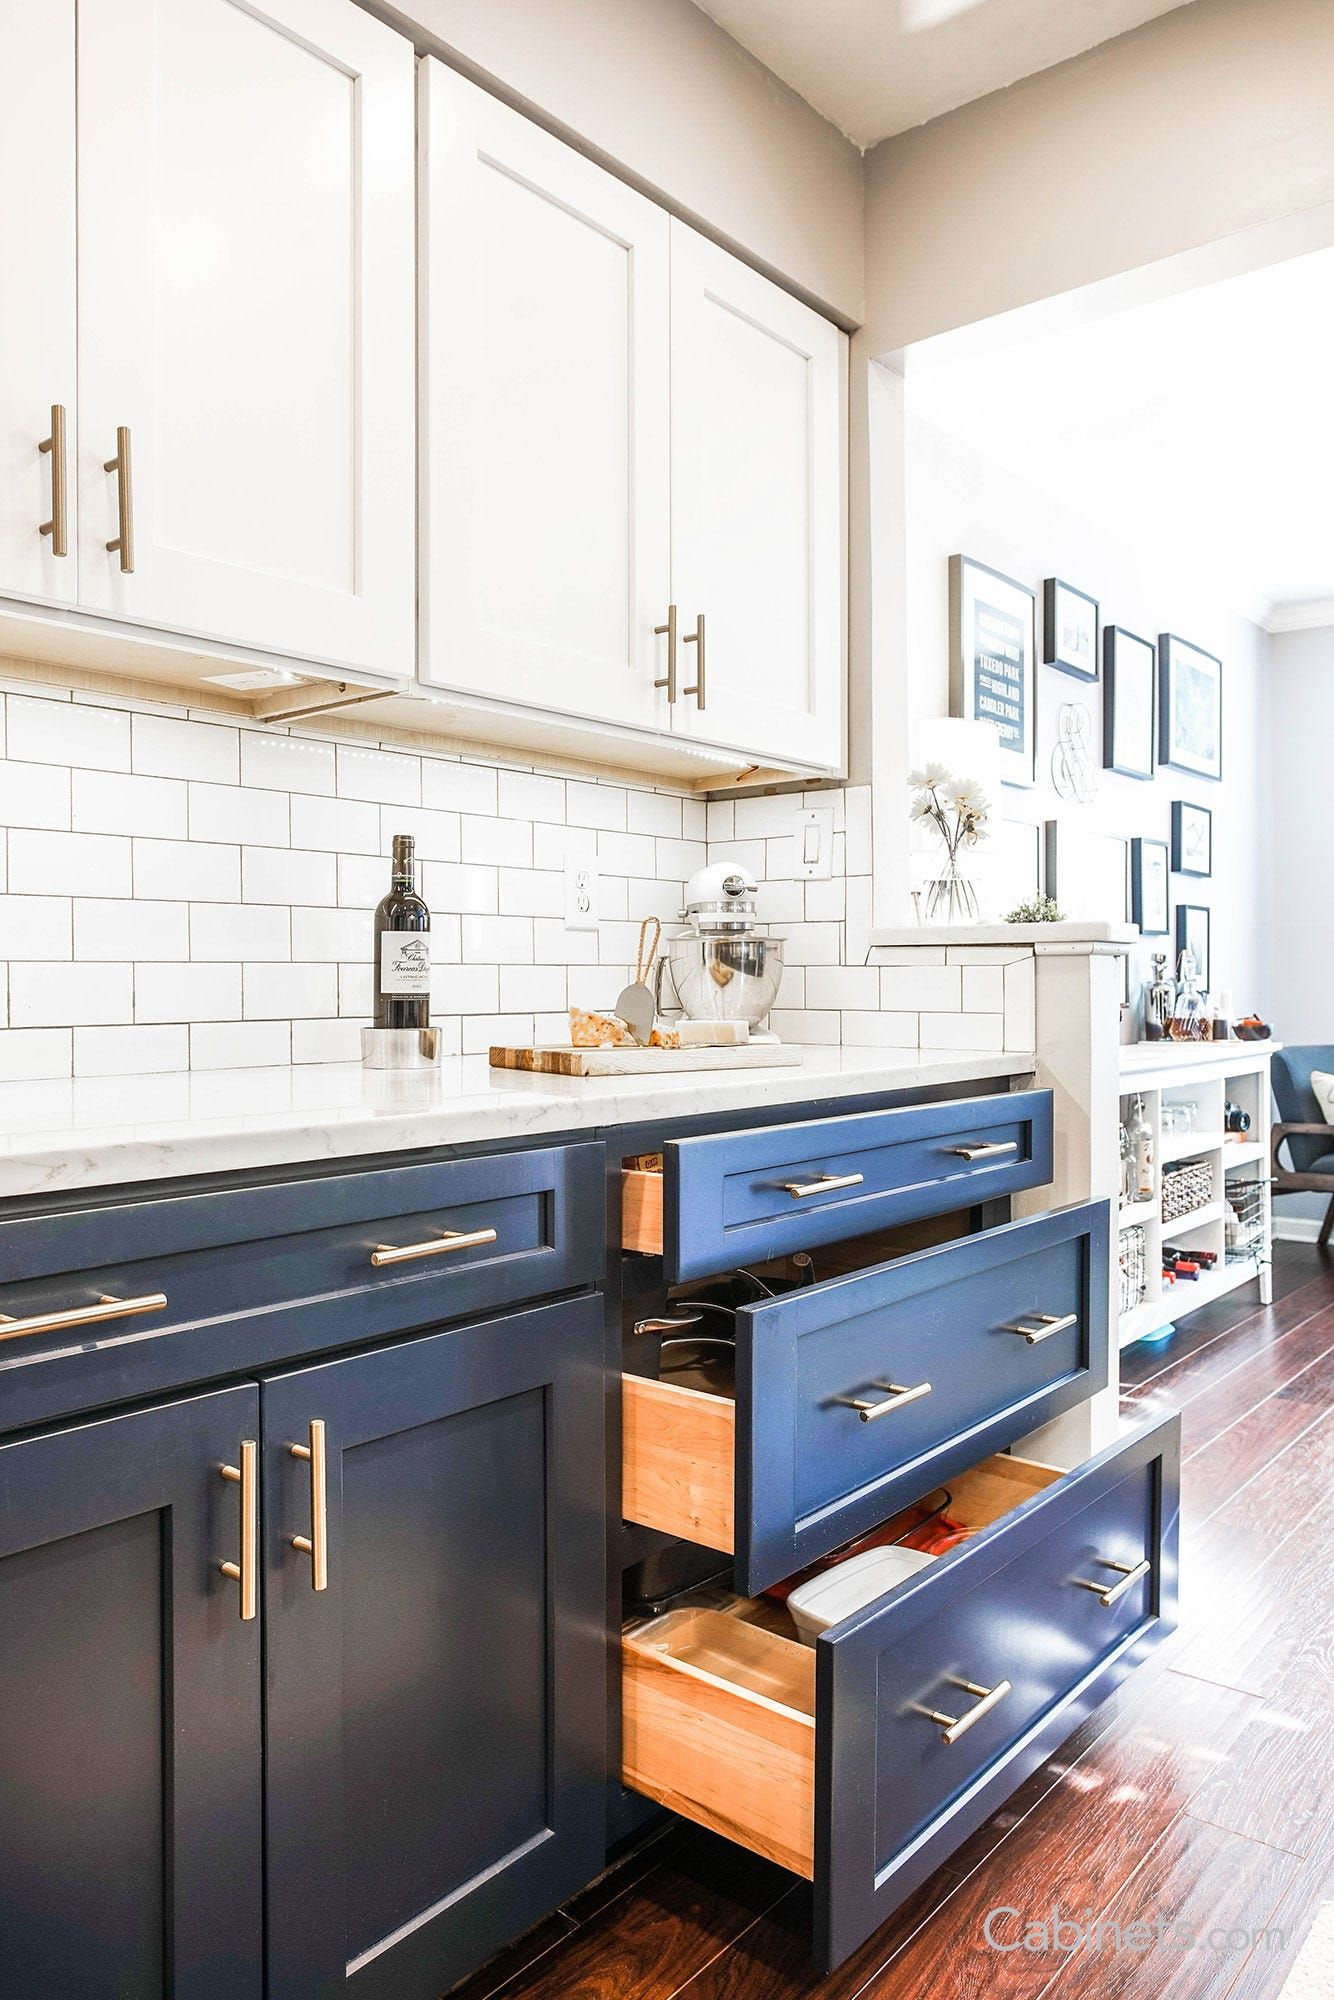 Naval And White Shaker Kitchen With Subway Tile Cabinets Com In 2020 White Kitchen Design Kitchen Cabinets Color Combination Kitchen Design